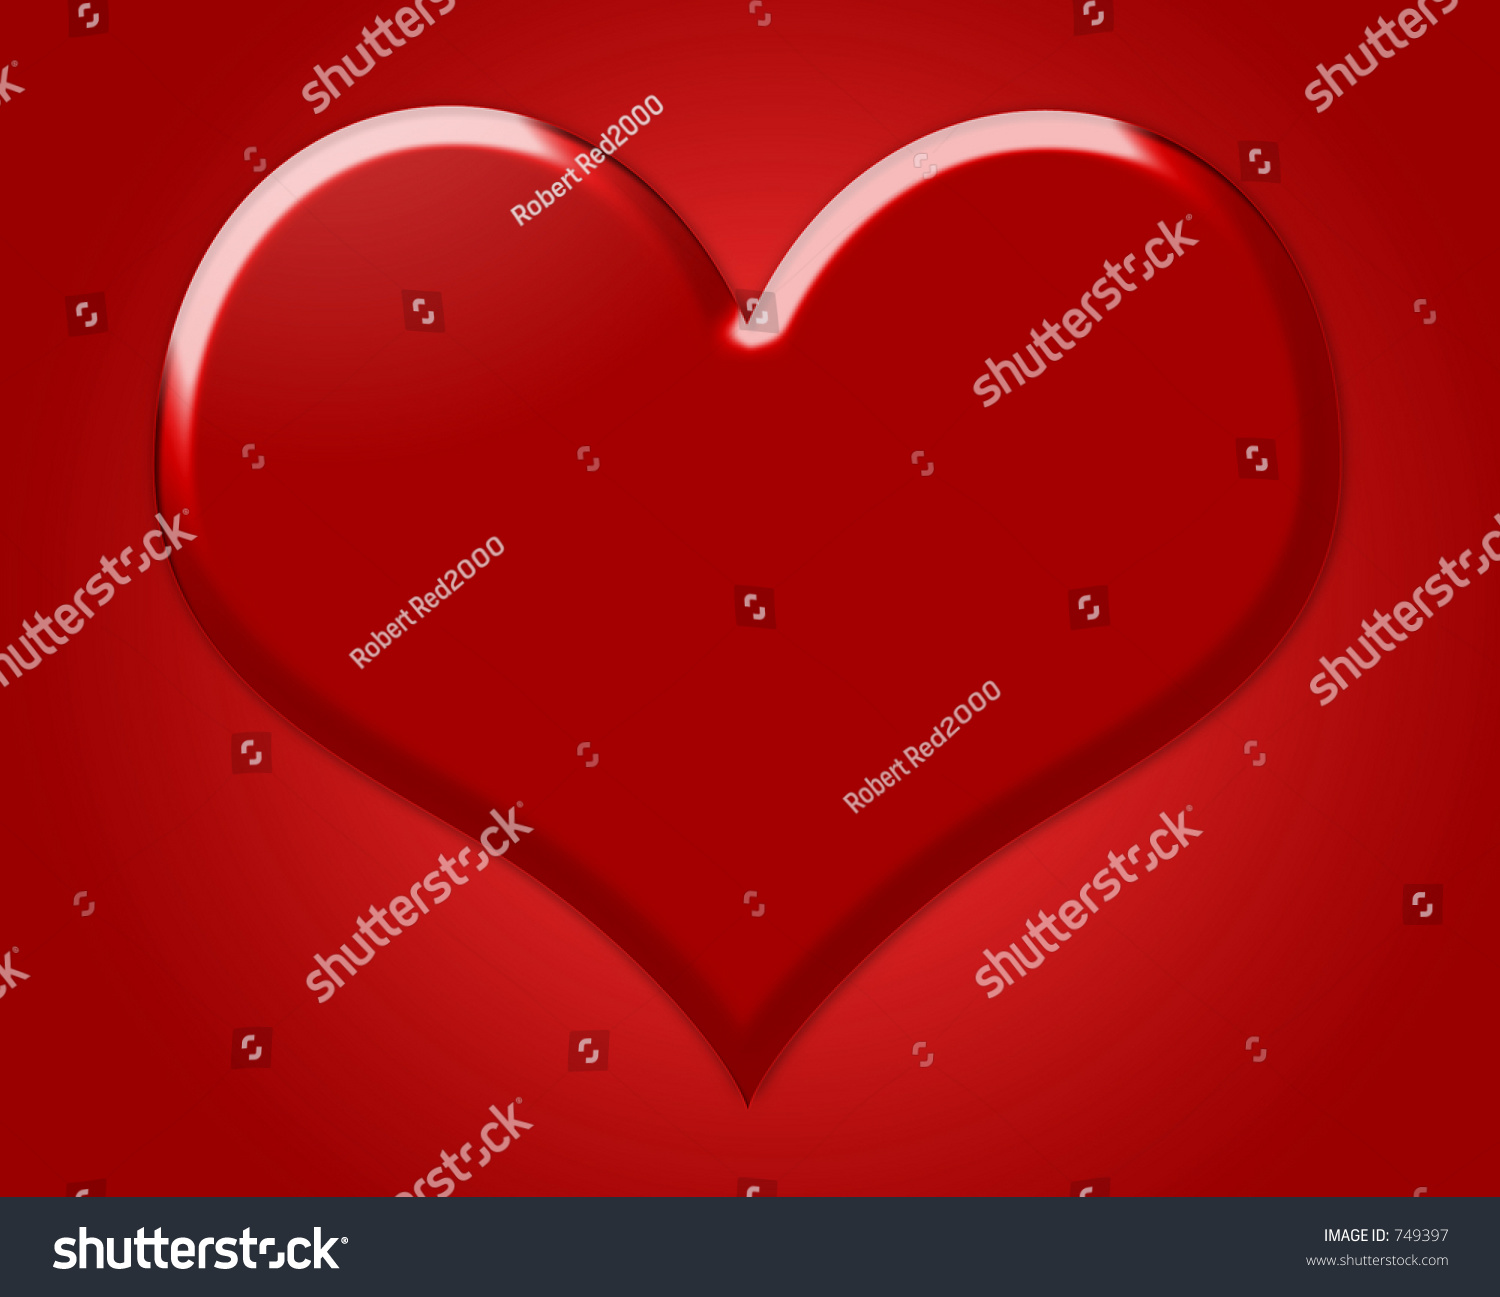 Big red heart symbol love red stock photo 749397 shutterstock big red heart symbol of love with red background buycottarizona Image collections